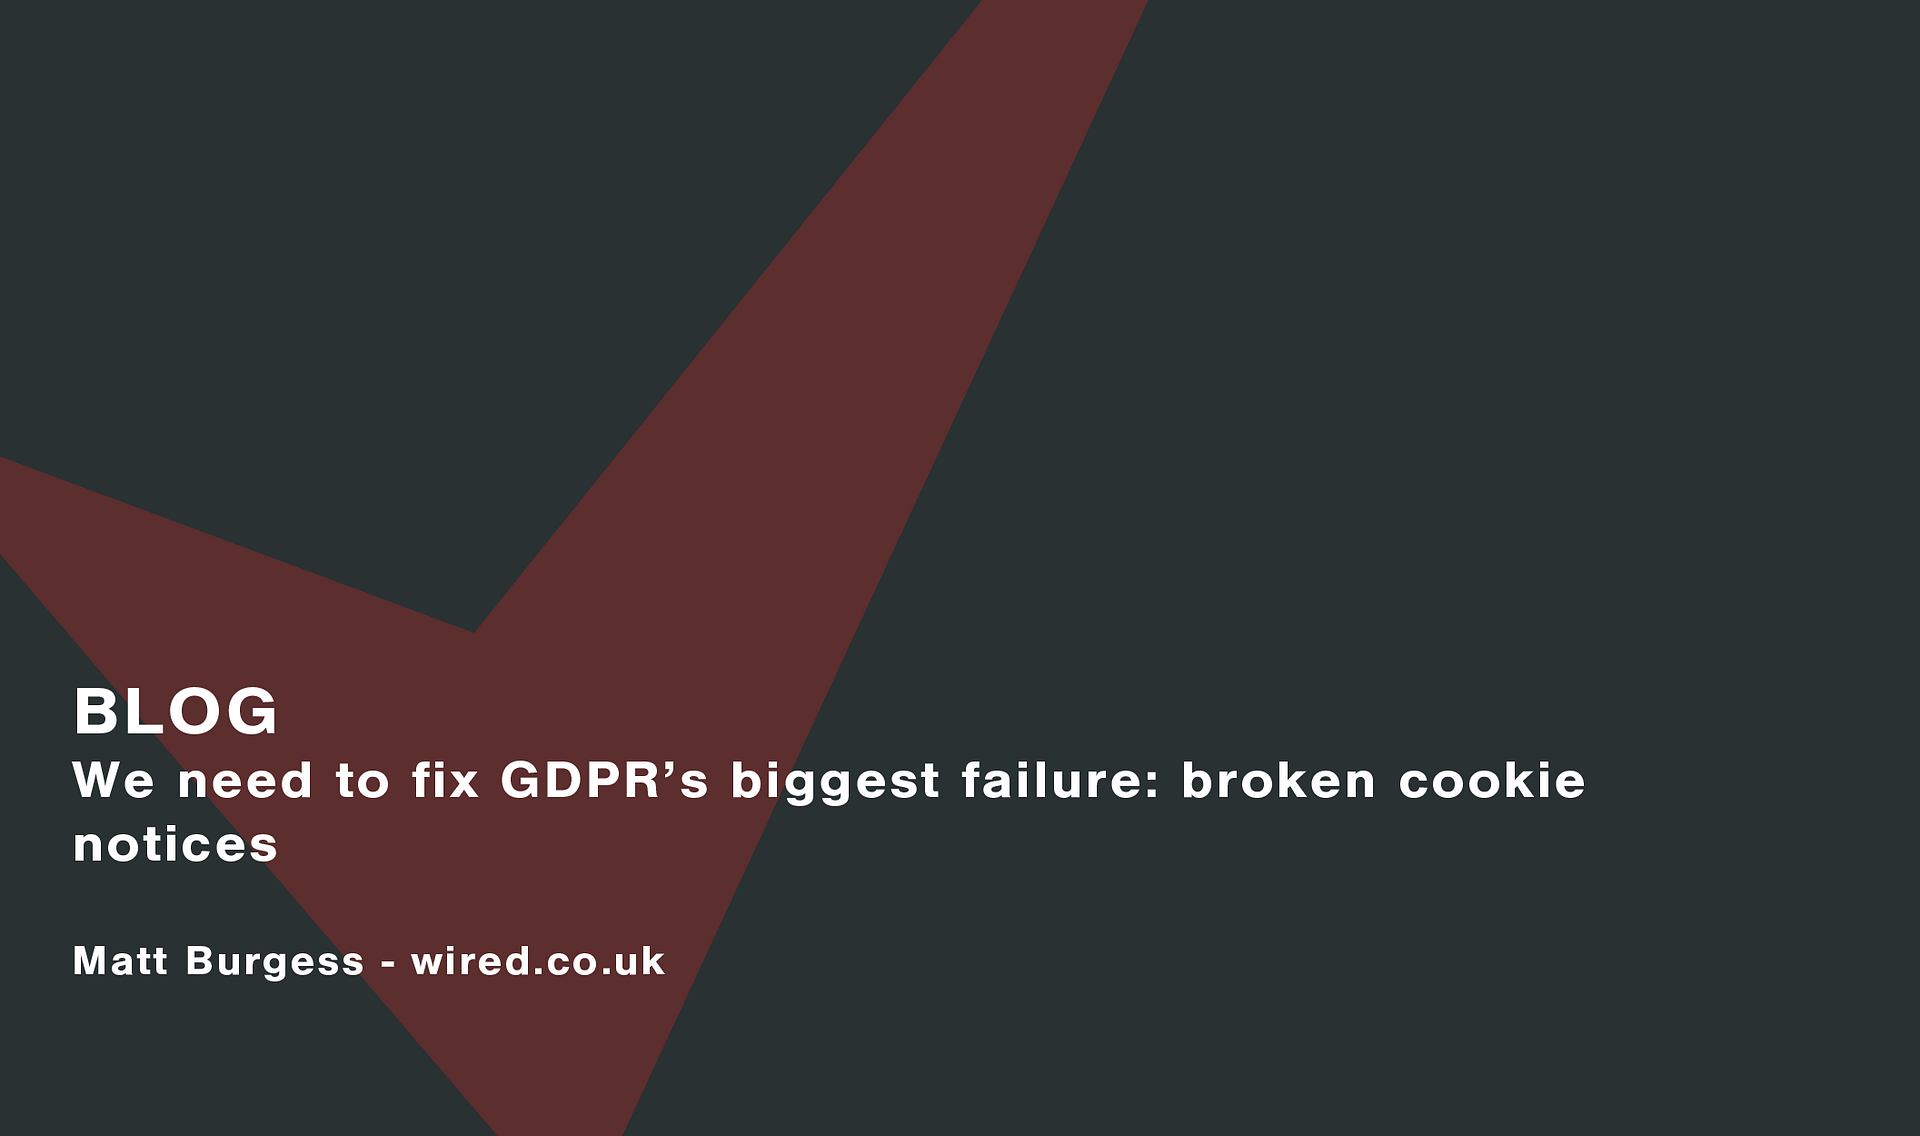 We need to fix GDPR's biggest failure: broken cookie notices Cassie personal information & consent management